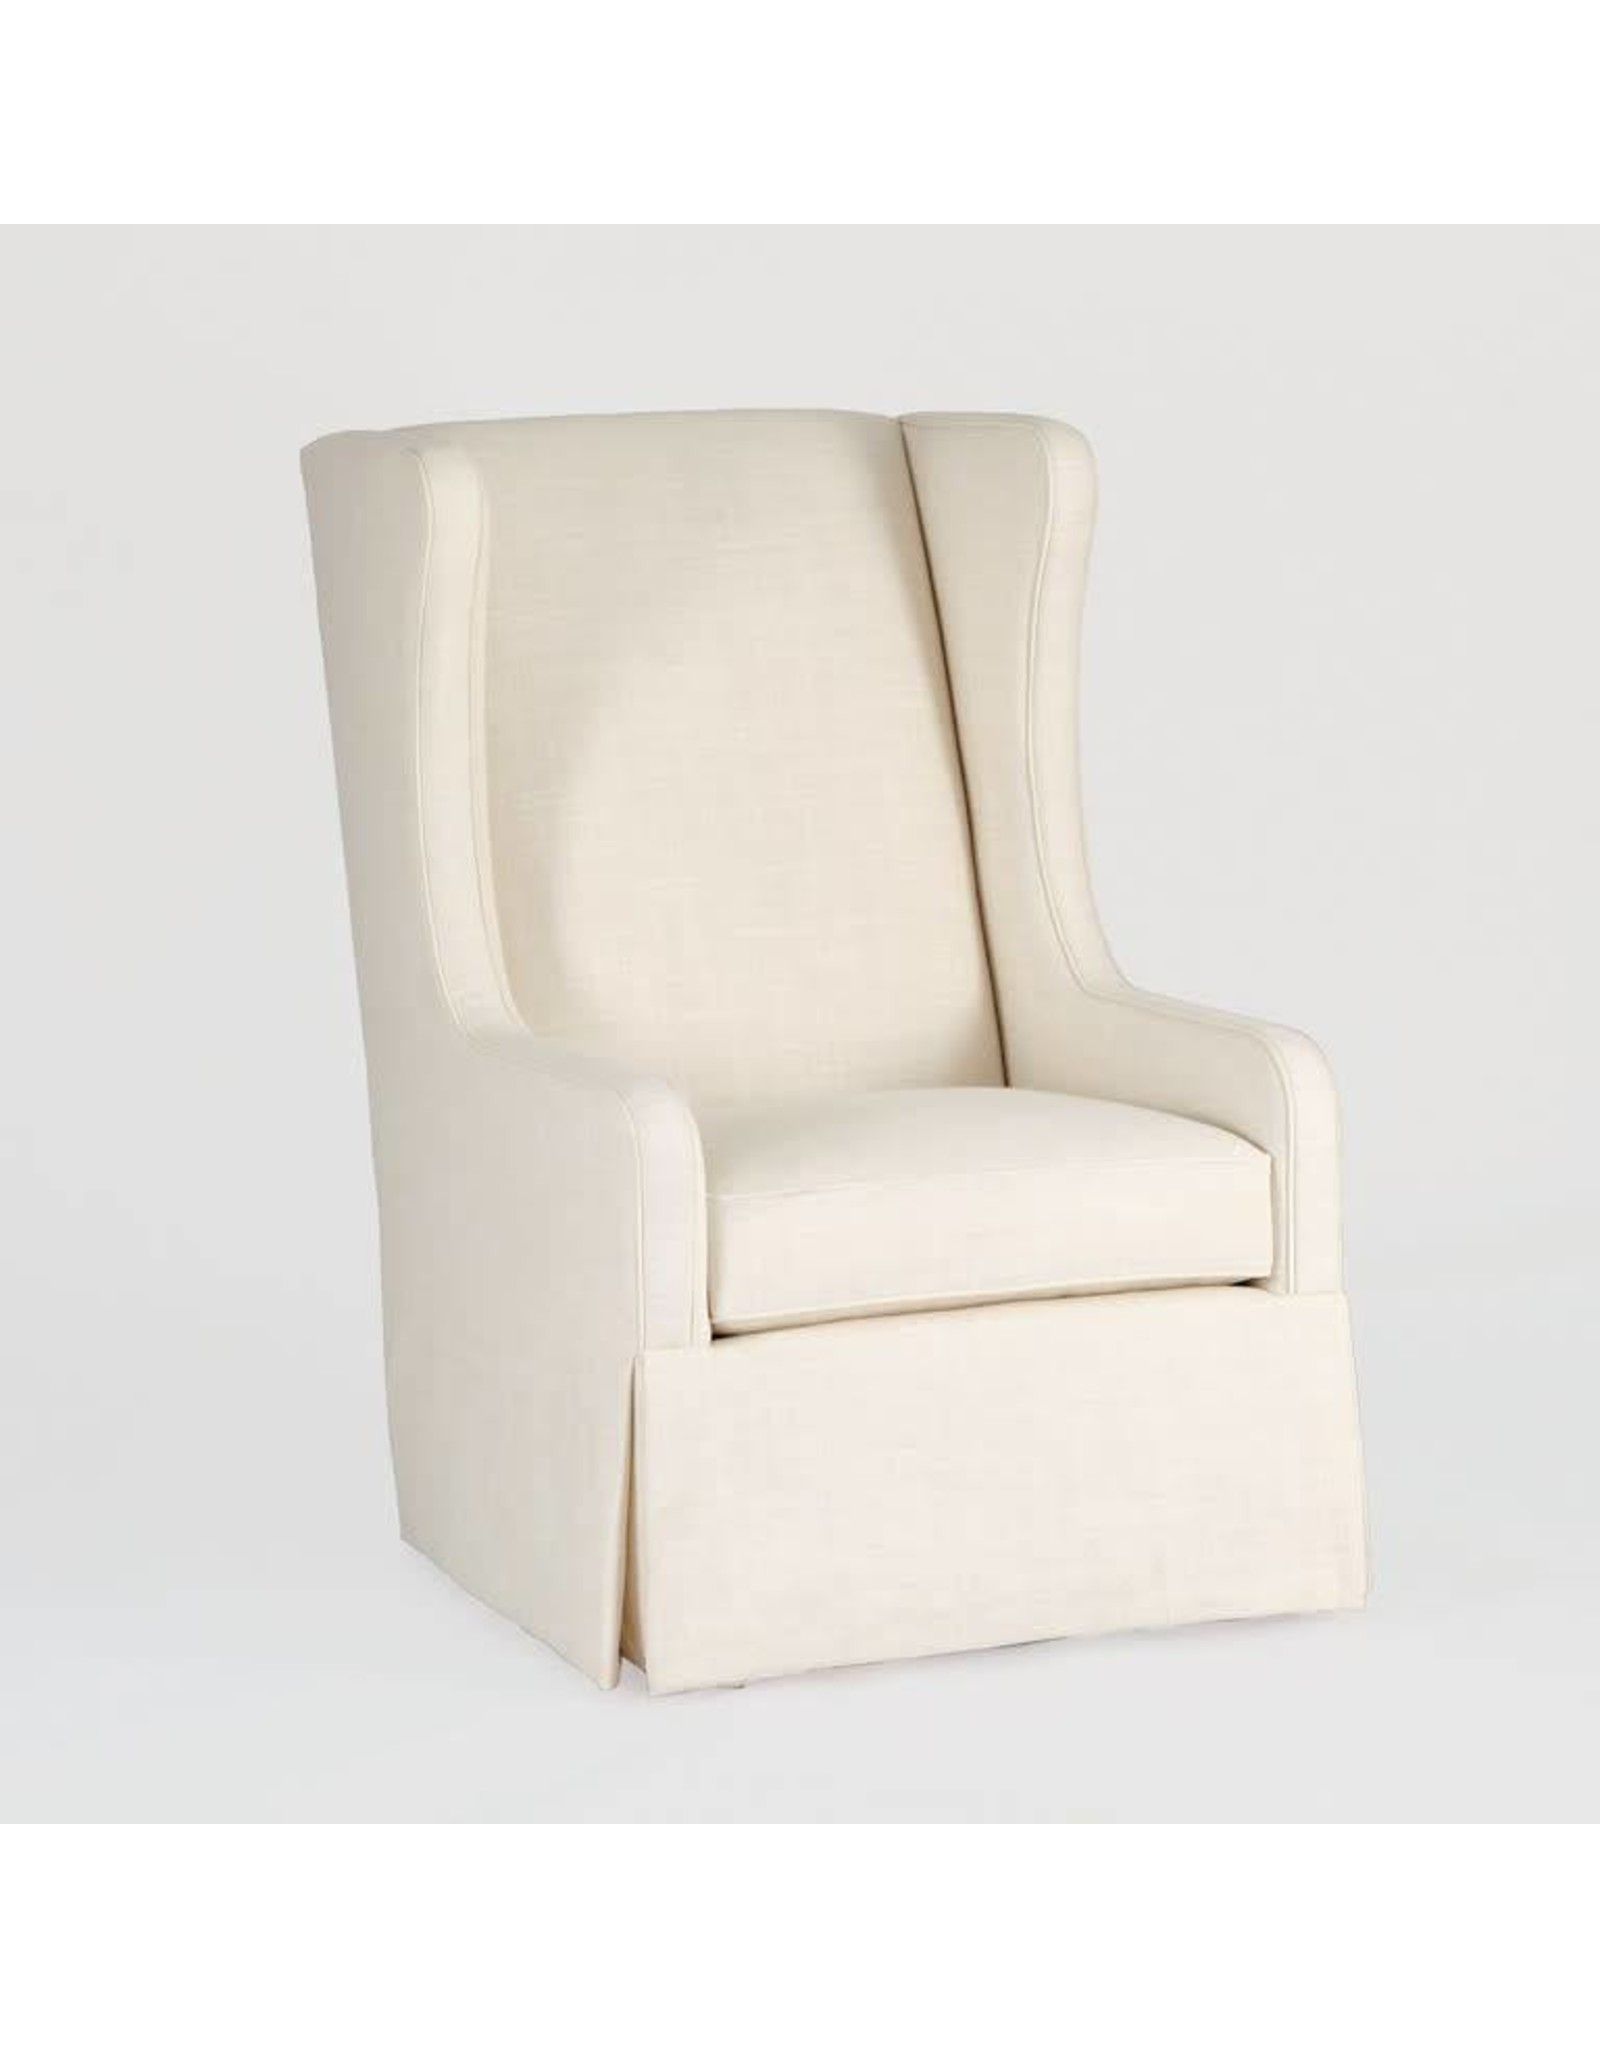 Gabby Reagan Chair